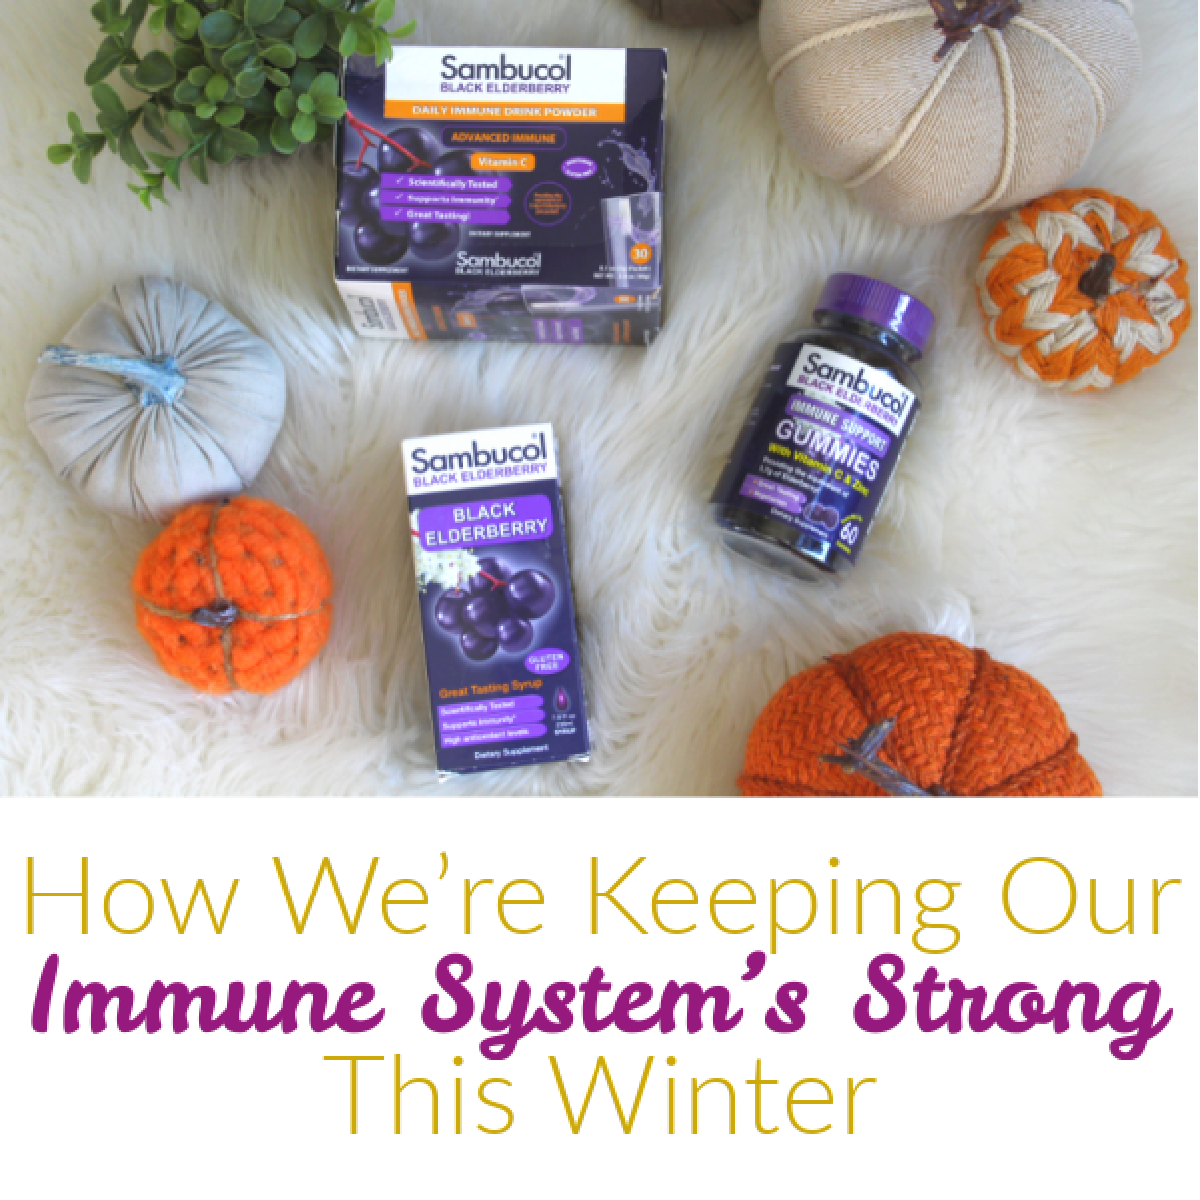 How We're Keeping Our Immune System's Strong This Winter